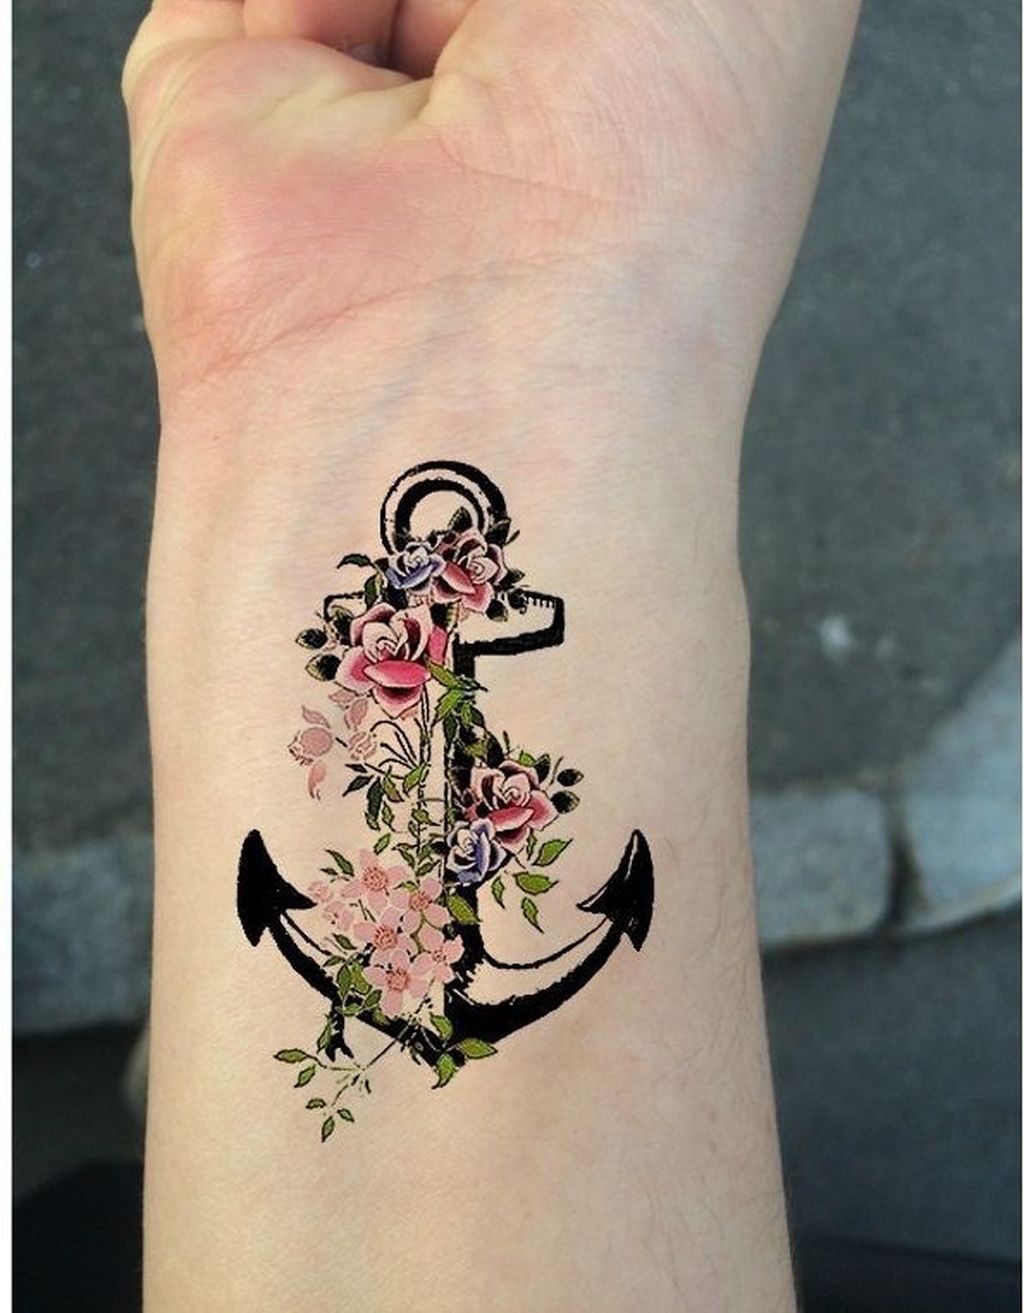 32 Cool Anchor Tattoos Design Ideas For Women In 2020 Tattoos For Women Anchor Tattoo Design Tattoo Designs